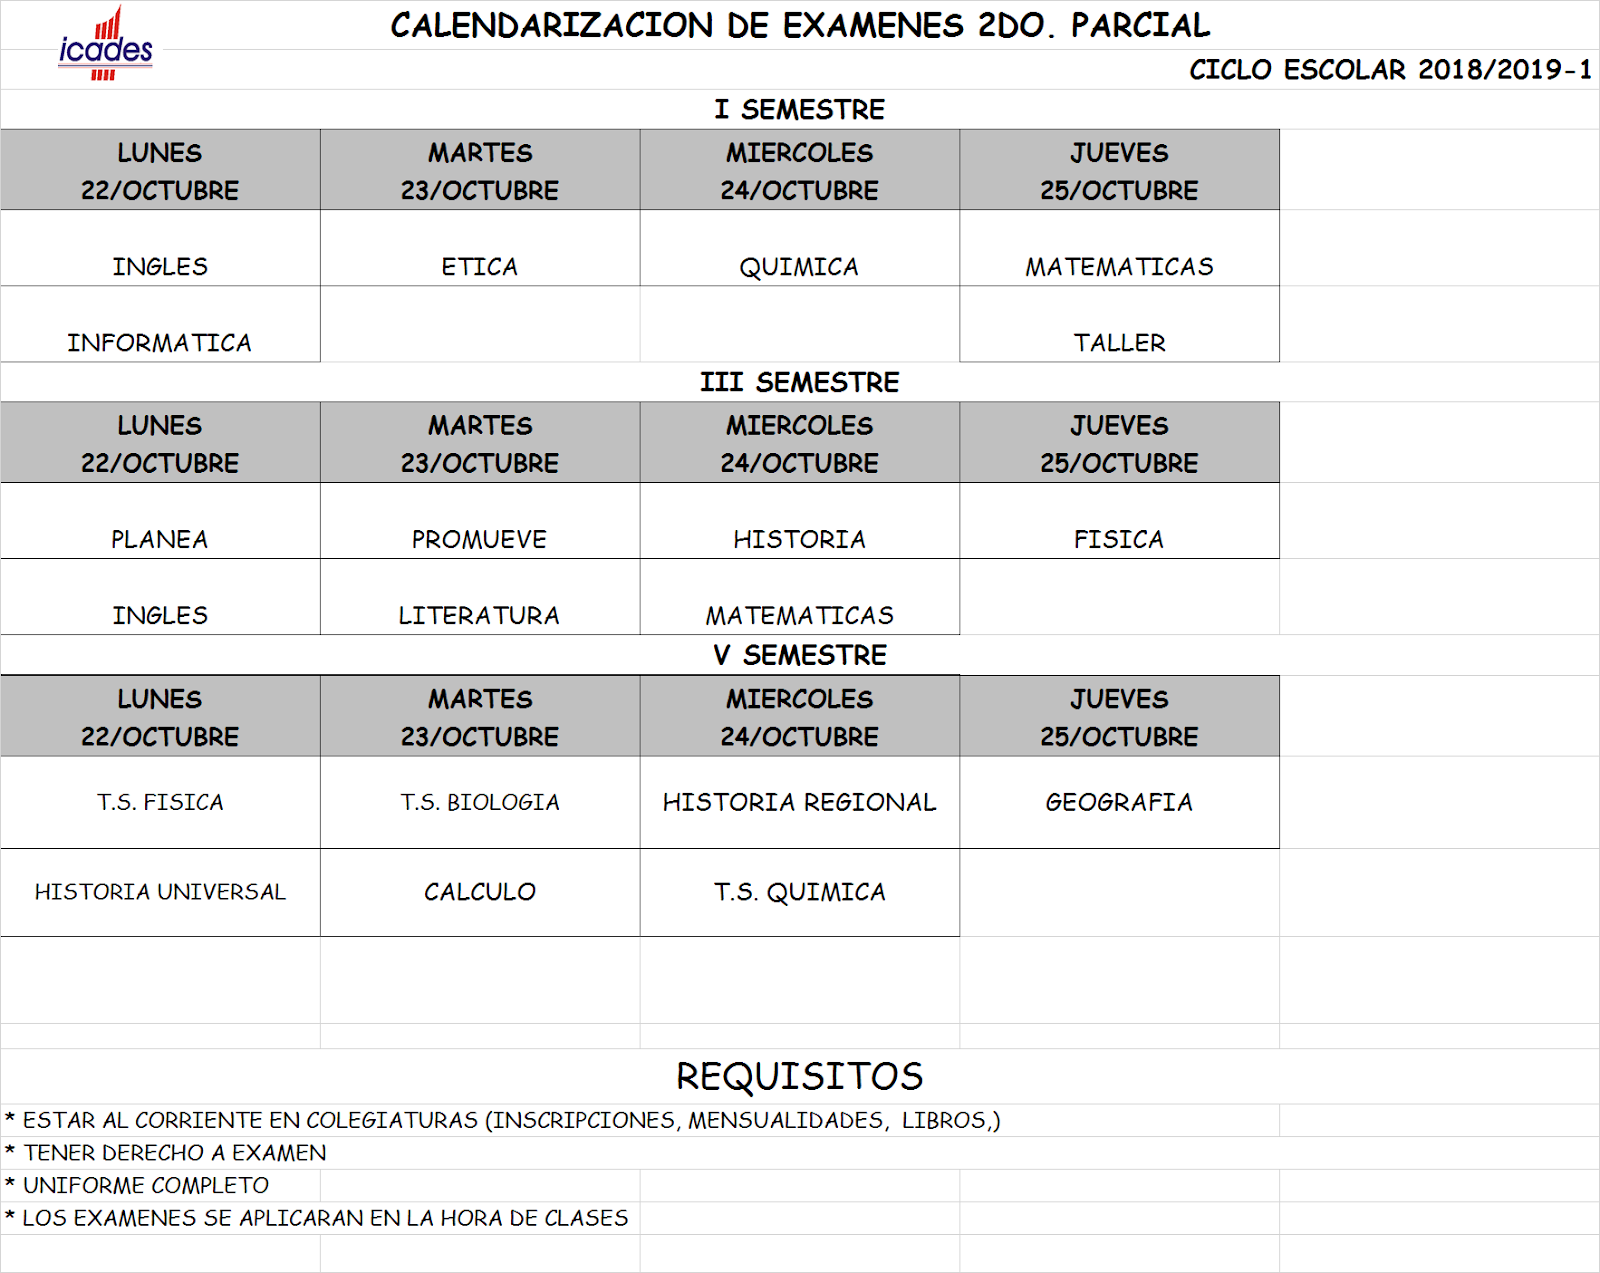 Calendario De Examenes.Informacion General Instituto Icades Calendario De Examenes